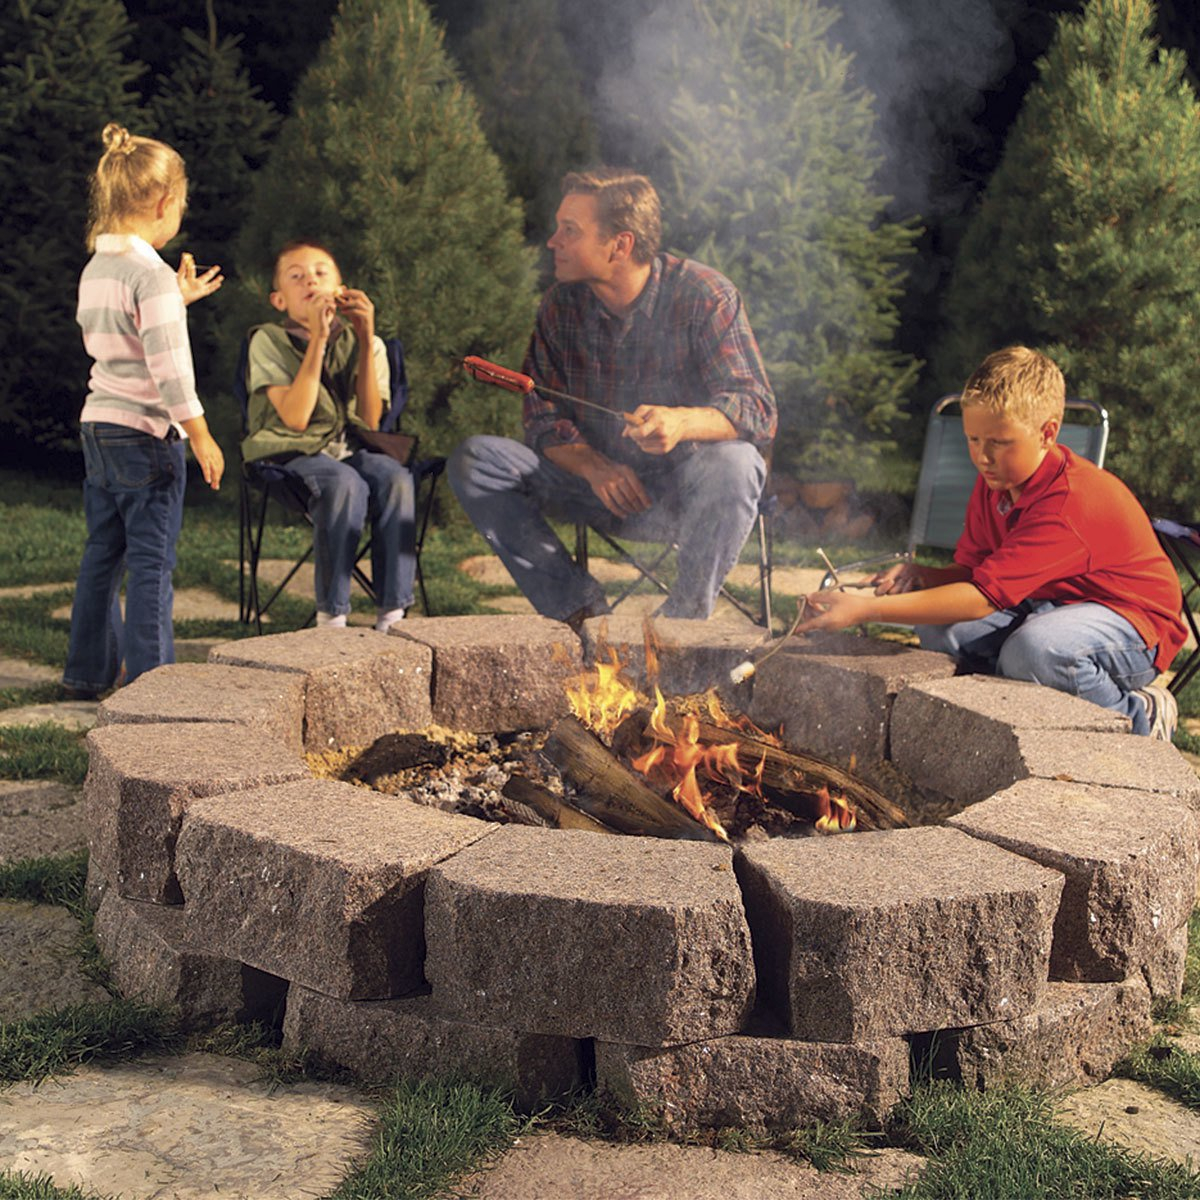 12 Great Backyard Fire Pit Ideas The Family Handyman pertaining to Backyard Firepit Ideas